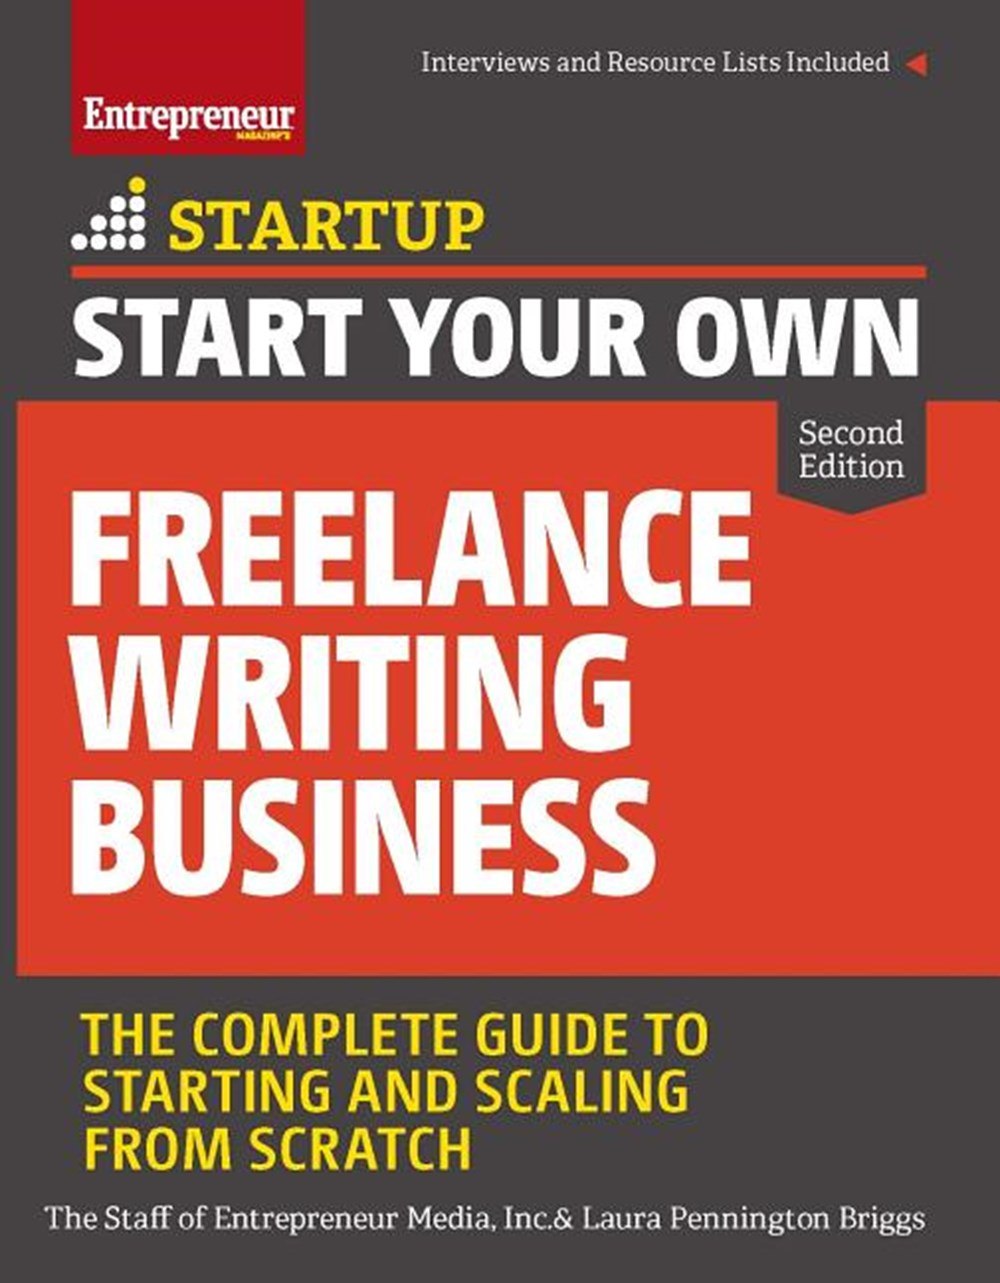 Start Your Own Freelance Writing Business The Complete Guide to Starting and Scaling from Scratch